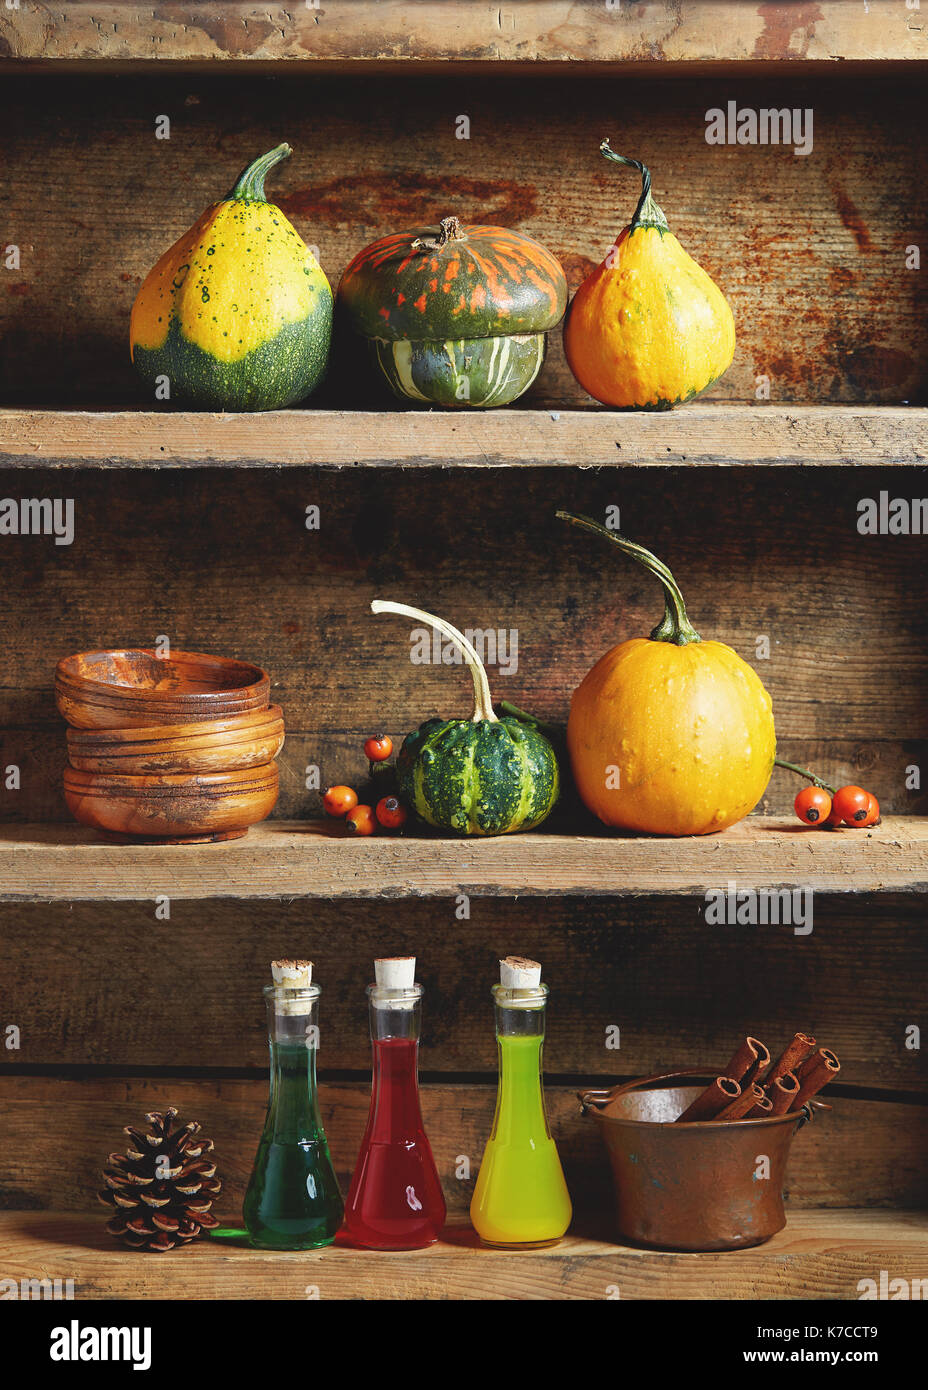 Autumn arrangement: Various types of decorative and edible pumpkins with magic potion bottles andbowls on old wooden shelf. - Stock Image